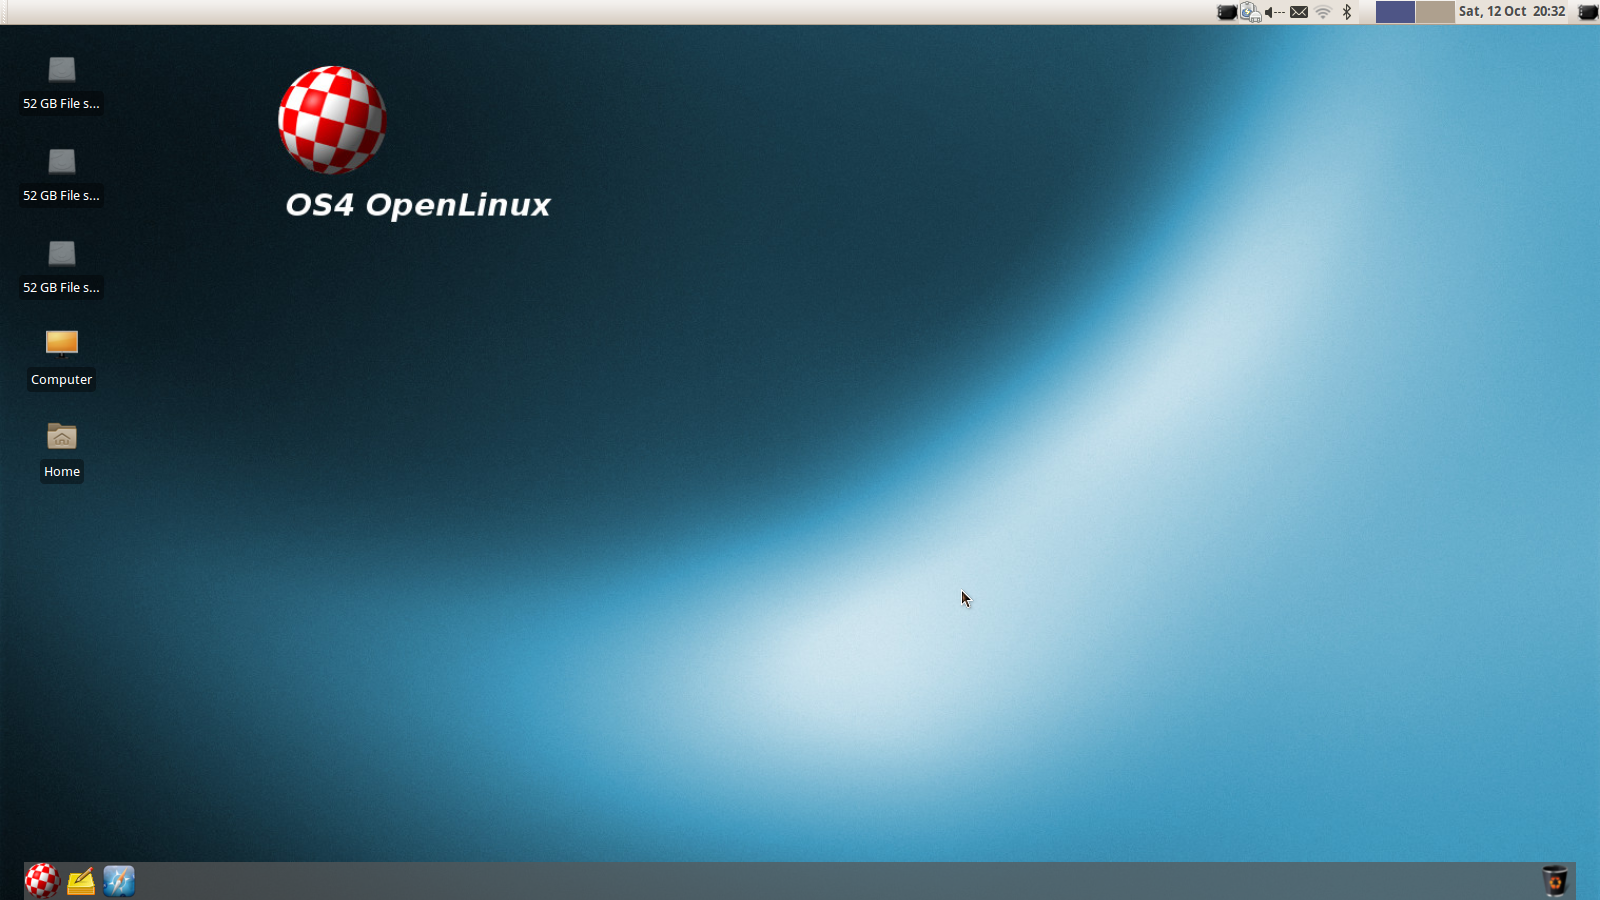 OS4 OpenLinux - Lightweight Linux based operating system for